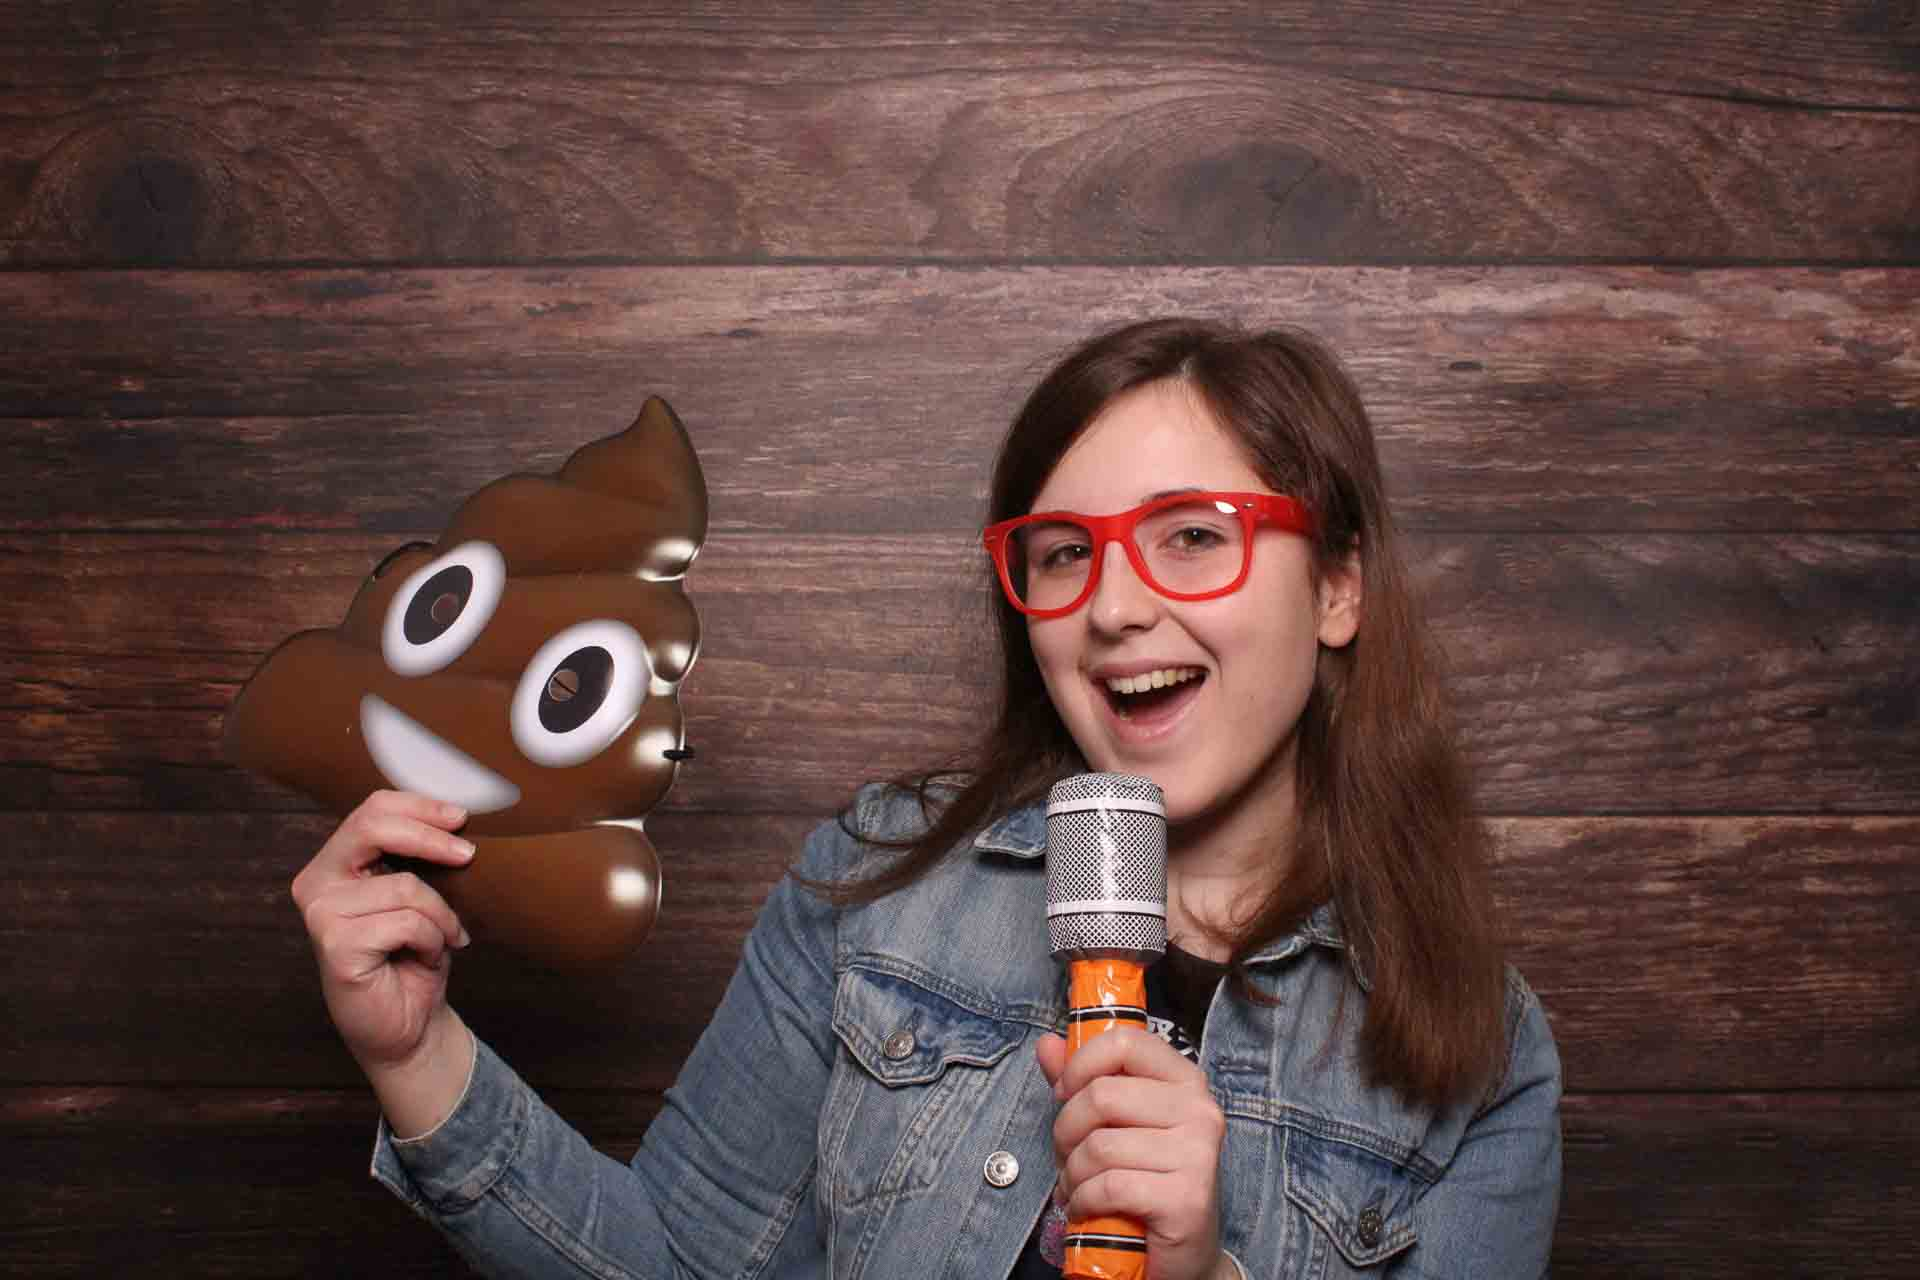 Fotobox Weinheim - Emoticon Poo